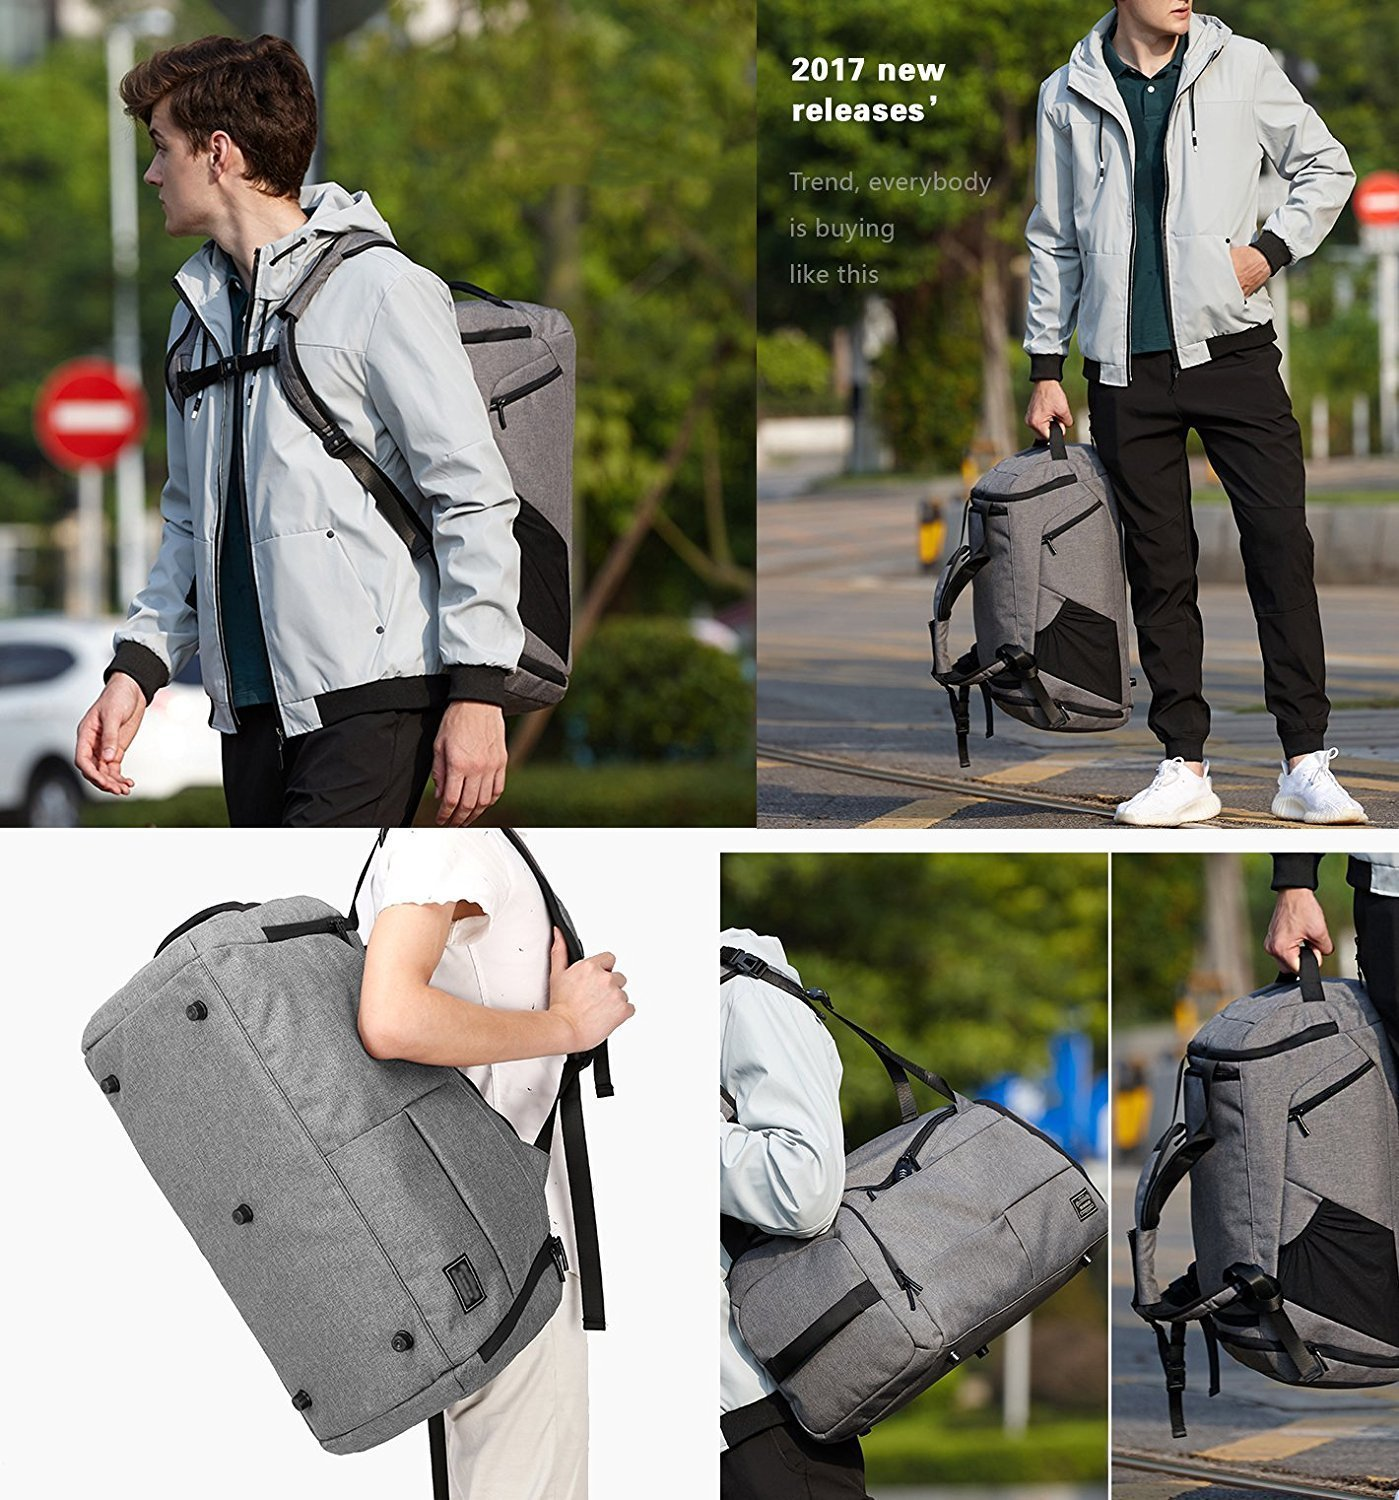 KEYNEW 55L Waterproof Duffel Sports Gym Bag for Men Women with Shoes Compartment by KEYNEW (Image #7)